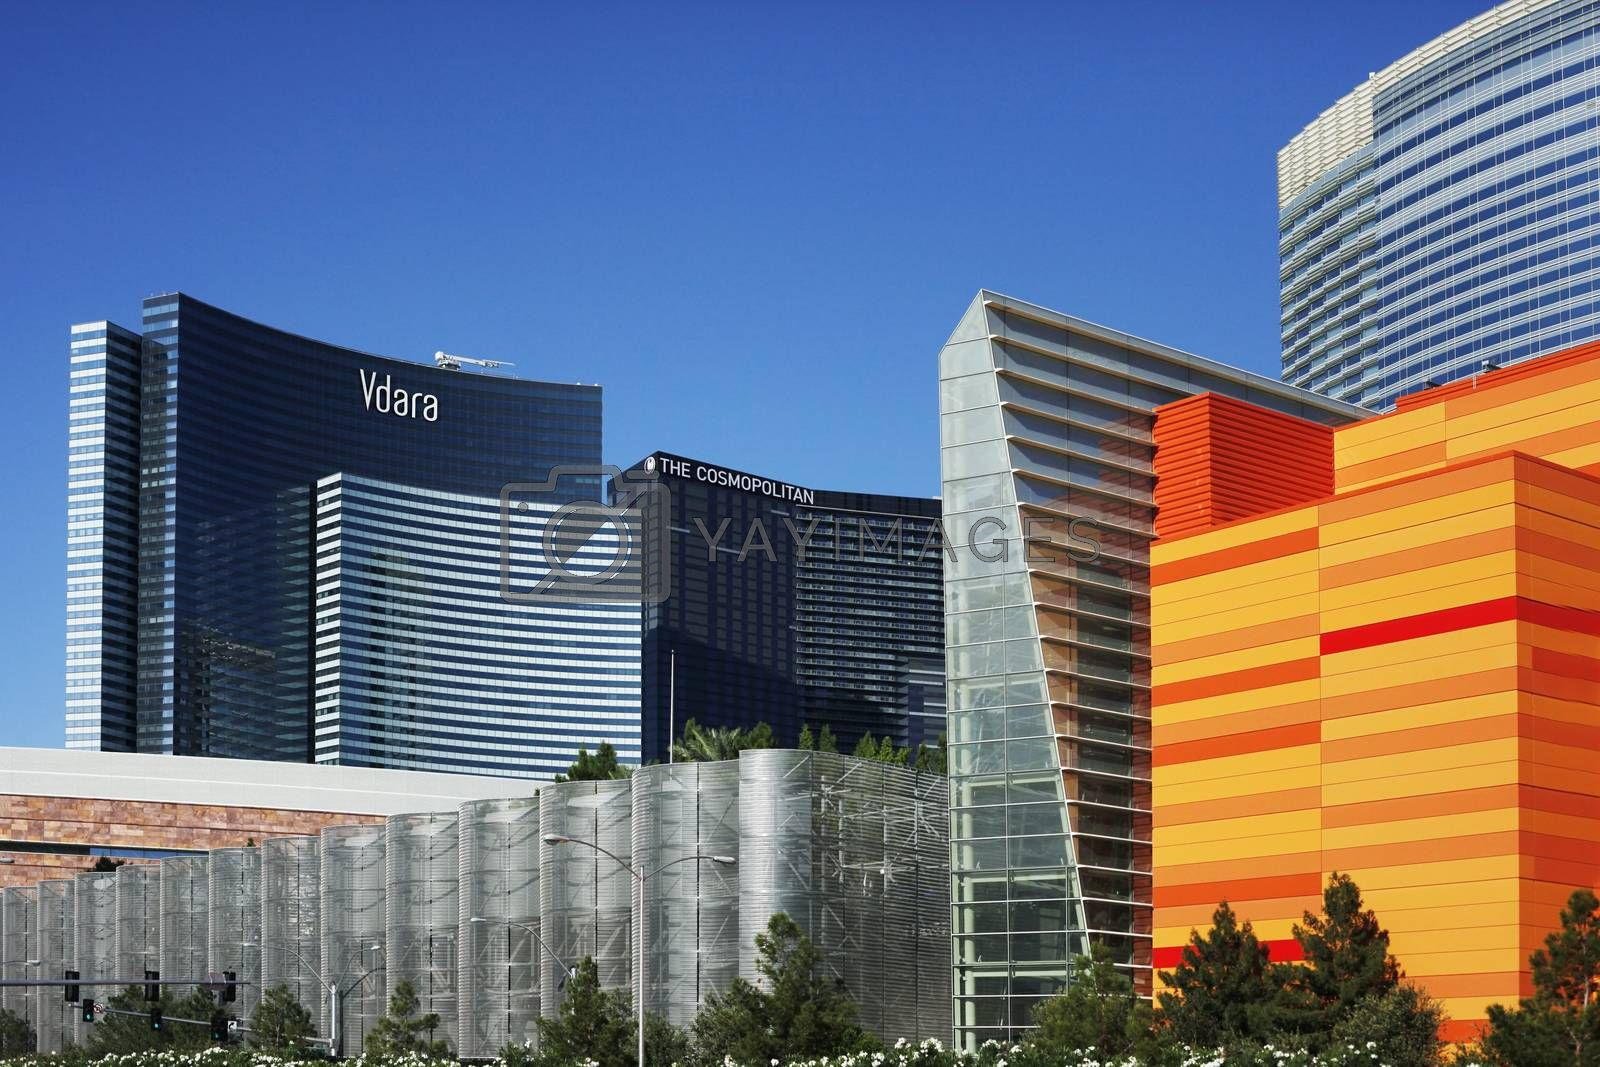 Las Vegas, Nevada, USA - September 19, 2011: East tower of the Cosmopolitan luxury resort casino and hotel in Las Vegas. Cosmopolitan features two 50-story towers overlooking the heart of the Las Vegas Strip.